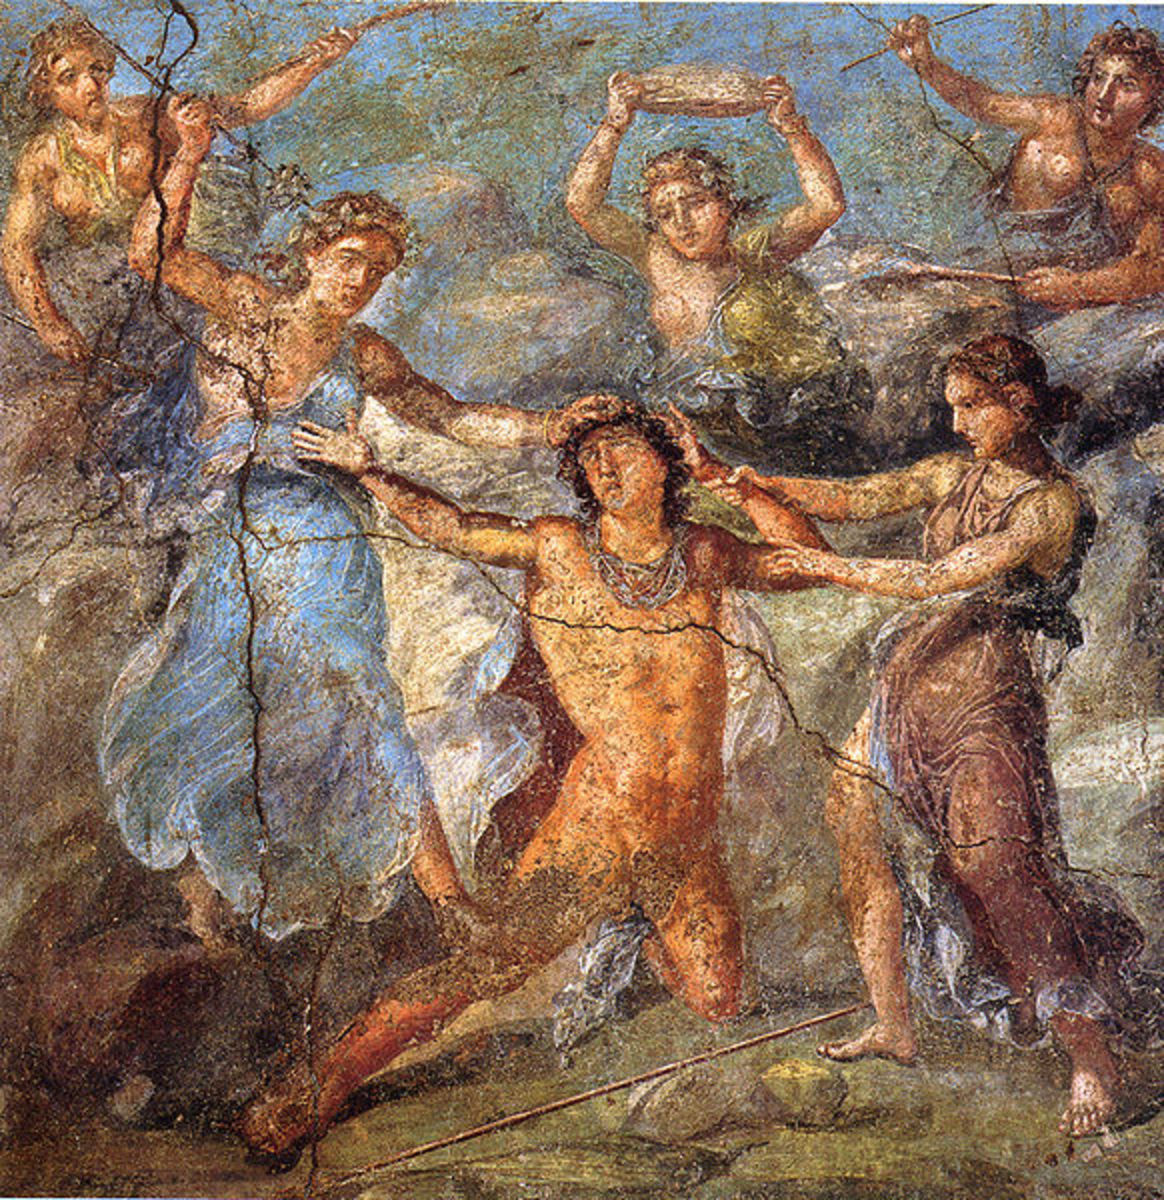 Pentheus being torn apart by maenads. Fresco from the House of the Vetti